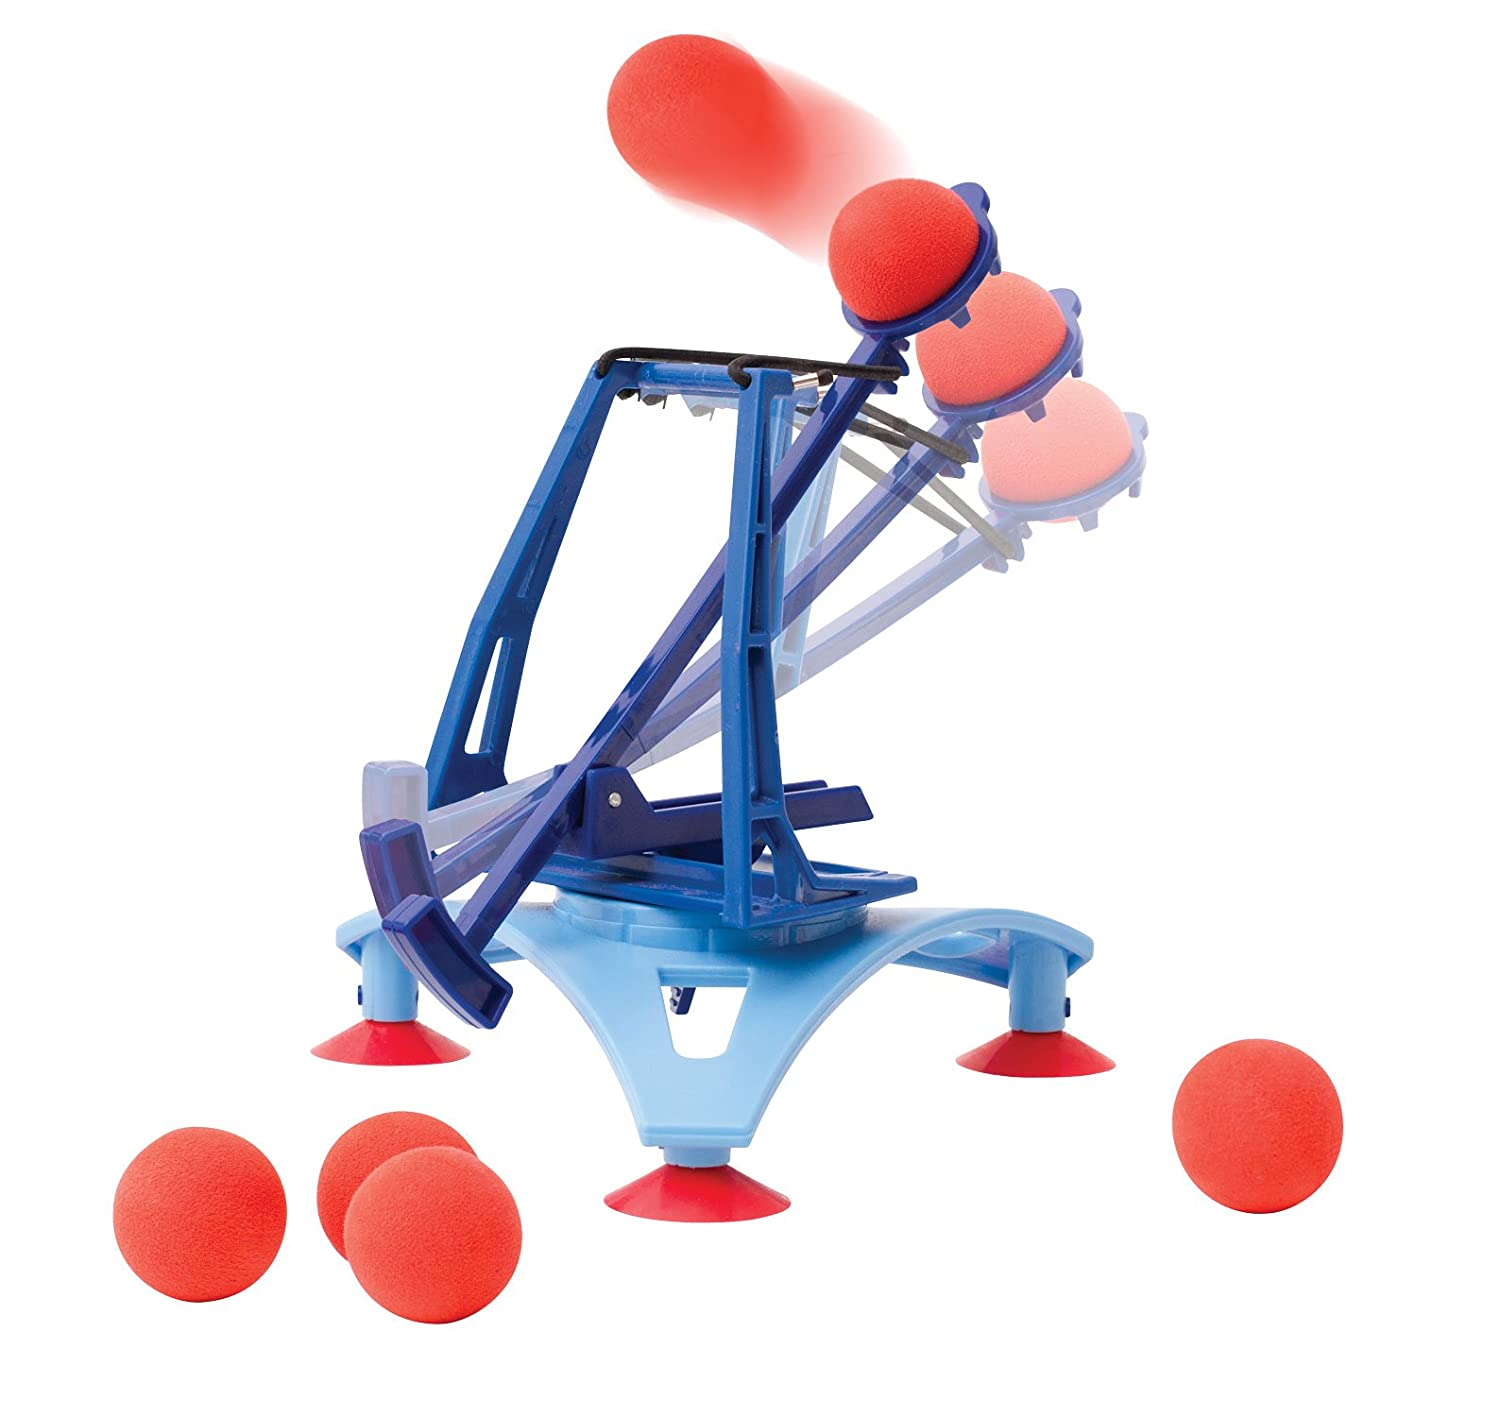 Amazon Science Education Games Catapult Toy For Boys Girls